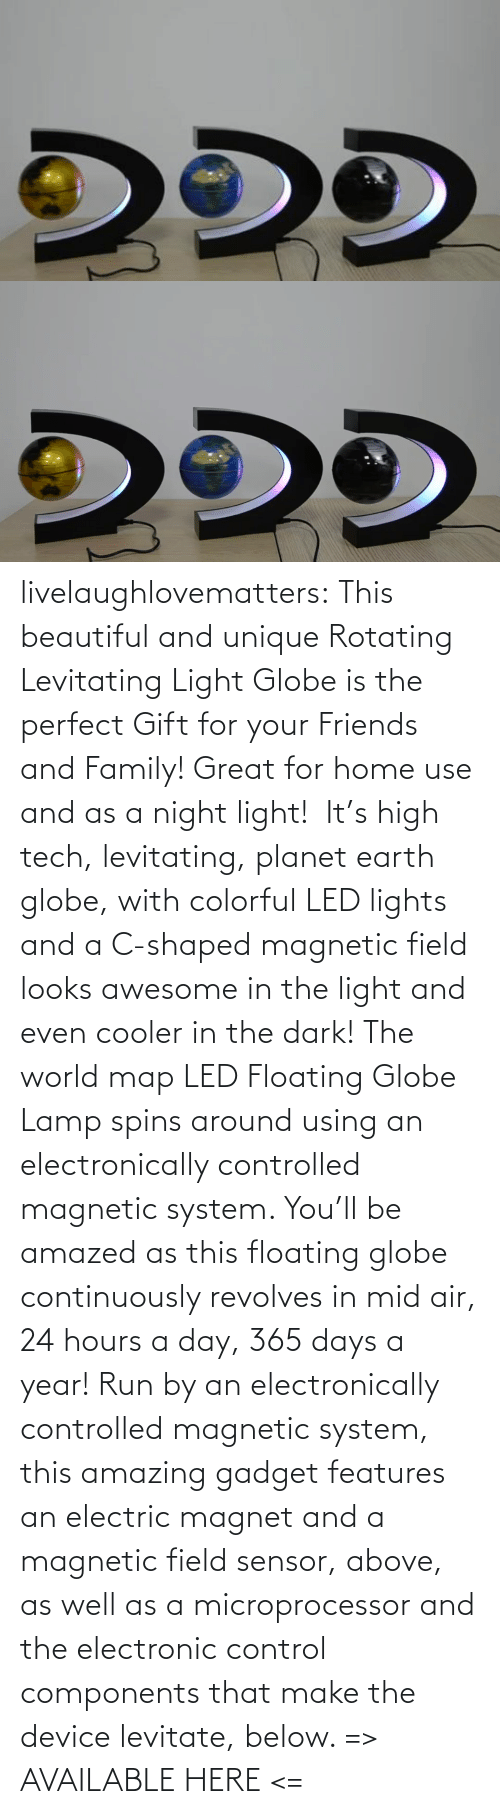 use: livelaughlovematters: This beautiful and unique Rotating Levitating Light Globe is the perfect Gift for your Friends and Family! Great for home use and as a night light!  It's high tech, levitating, planet earth globe, with colorful LED lights and a C-shaped magnetic field looks awesome in the light and even cooler in the dark! The world map LED Floating Globe Lamp spins around using an electronically controlled magnetic system.  You'll be amazed as this floating globe continuously revolves in mid air, 24 hours a day, 365 days a year! Run by an electronically controlled magnetic system, this amazing gadget features an electric magnet and a magnetic field sensor, above, as well as a microprocessor and the electronic control components that make the device levitate, below.  => AVAILABLE HERE <=